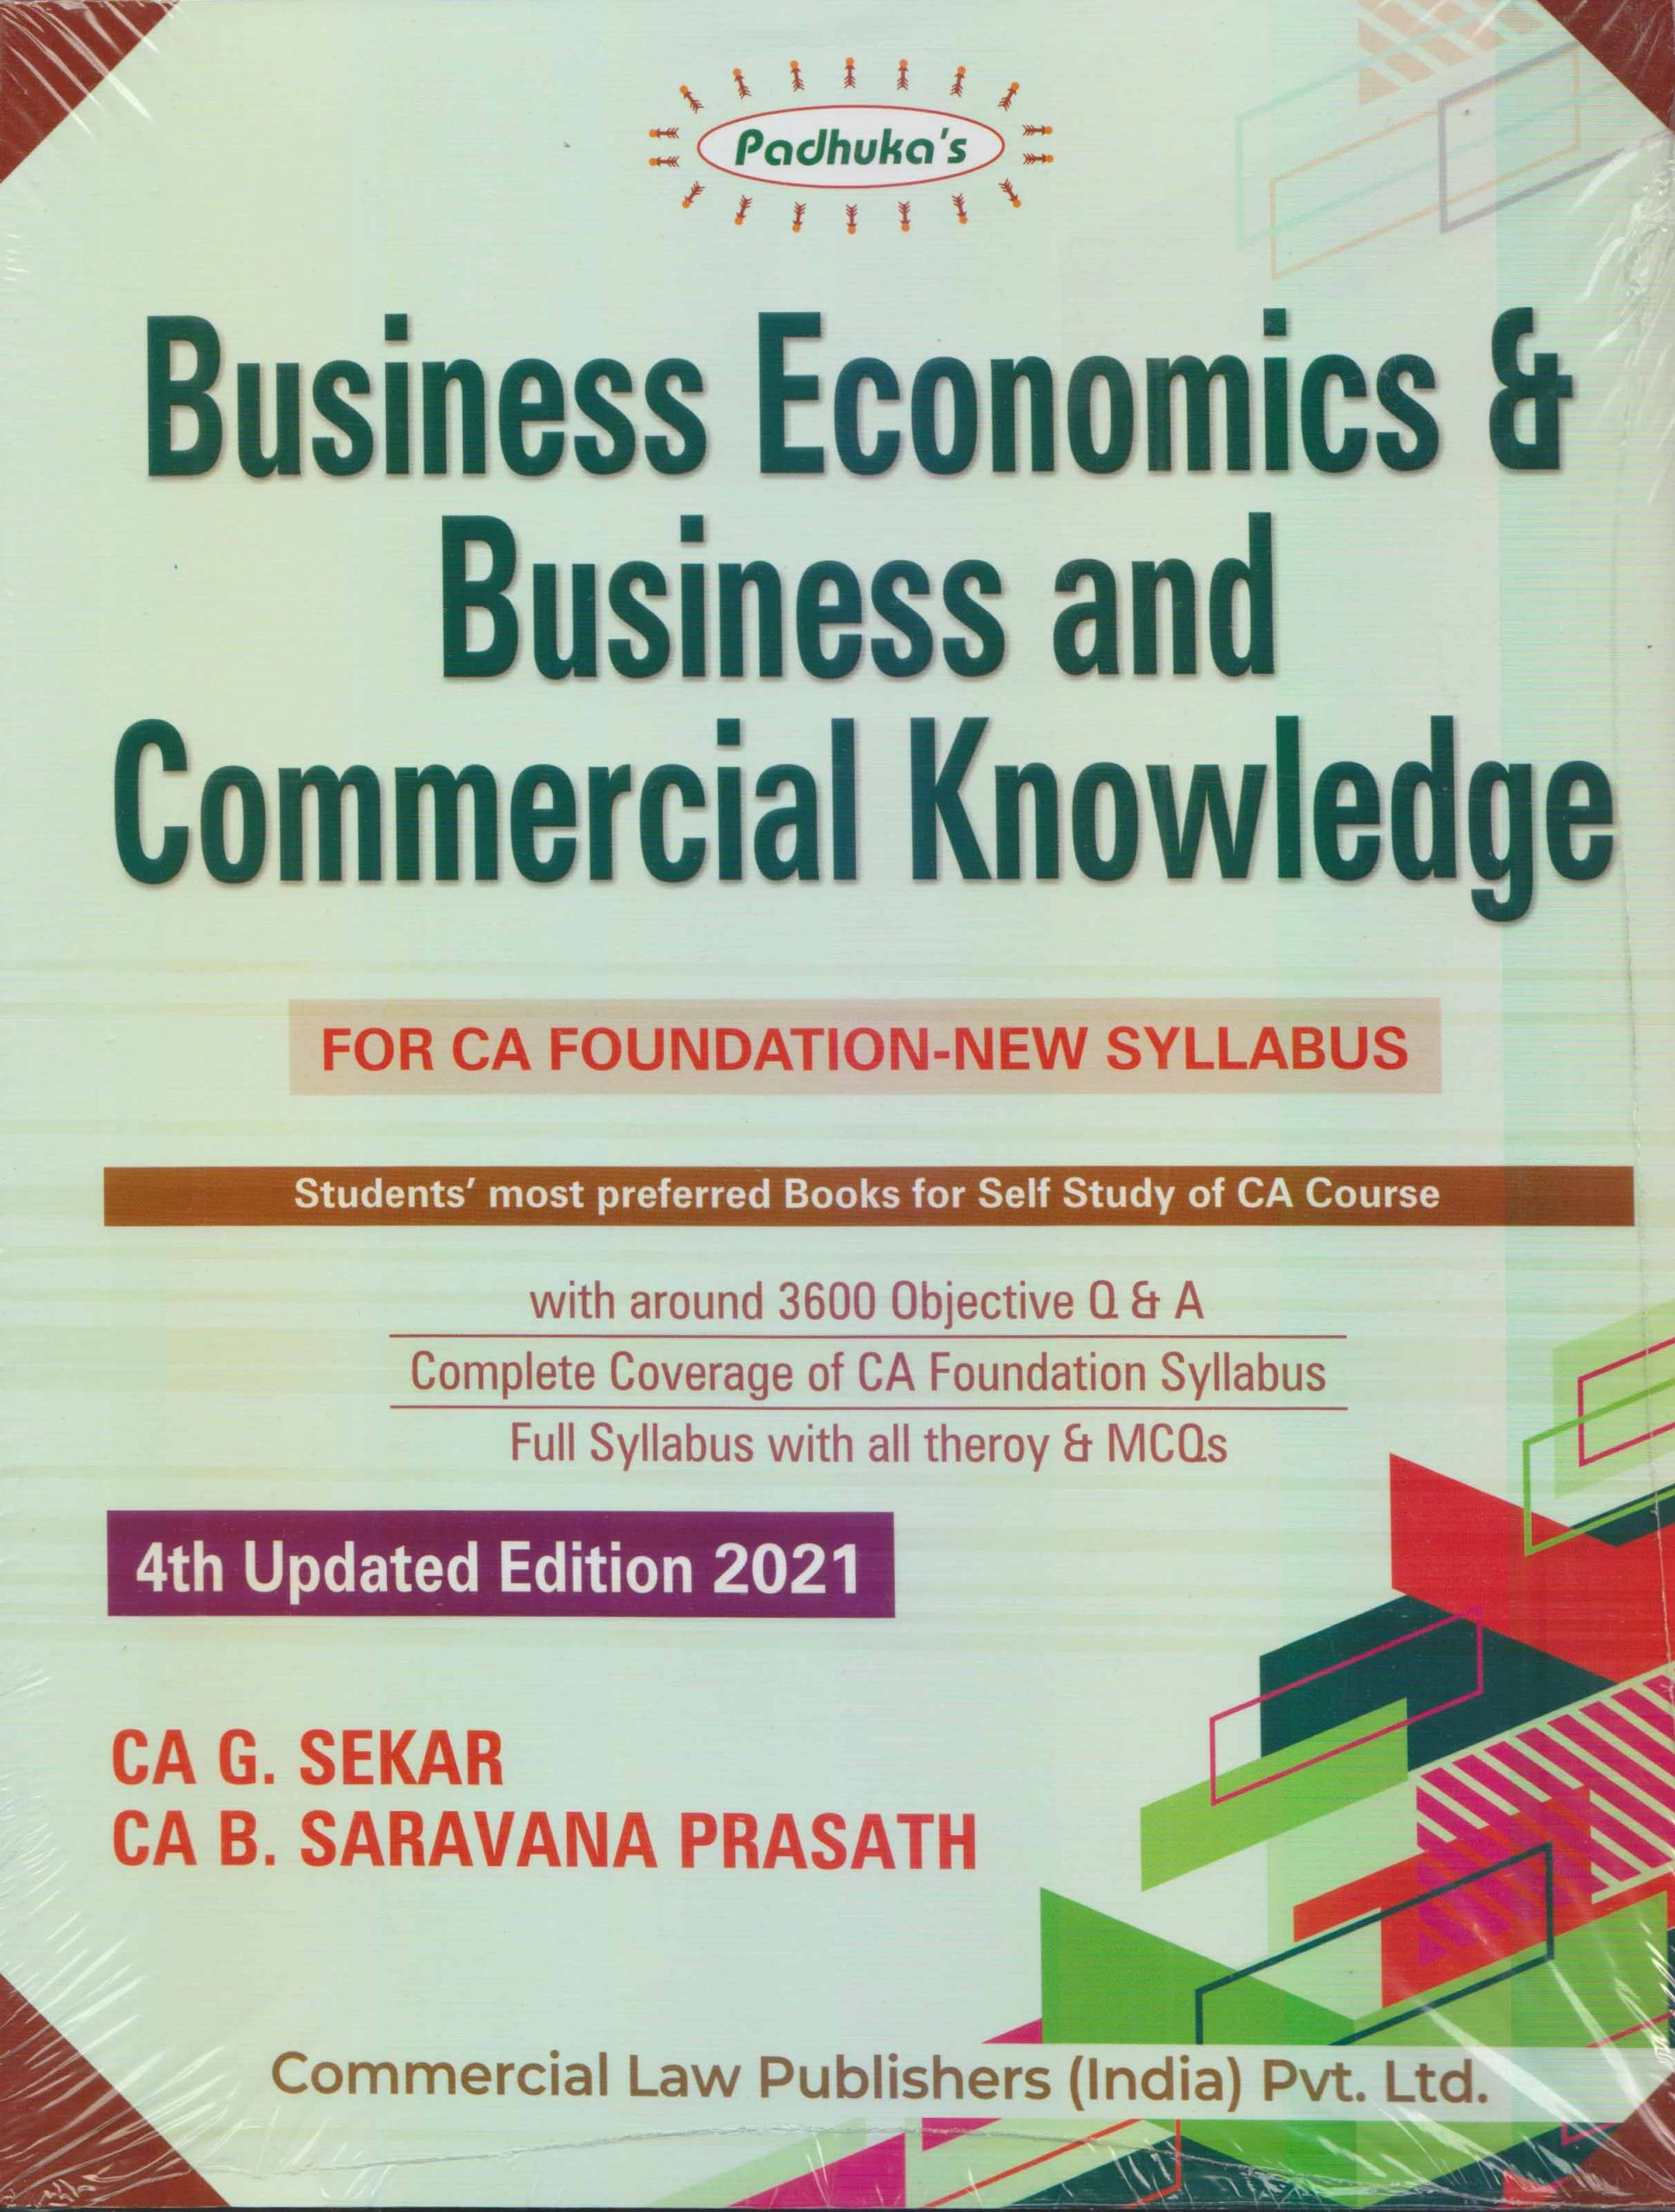 Padhuka Business Economics & Business & Commercial Knowledge (For CA Foundation New Syllabus) by CA G. Sekar & CA B. Saravana Prasath (Commercial law publishers) for 2021 Exam